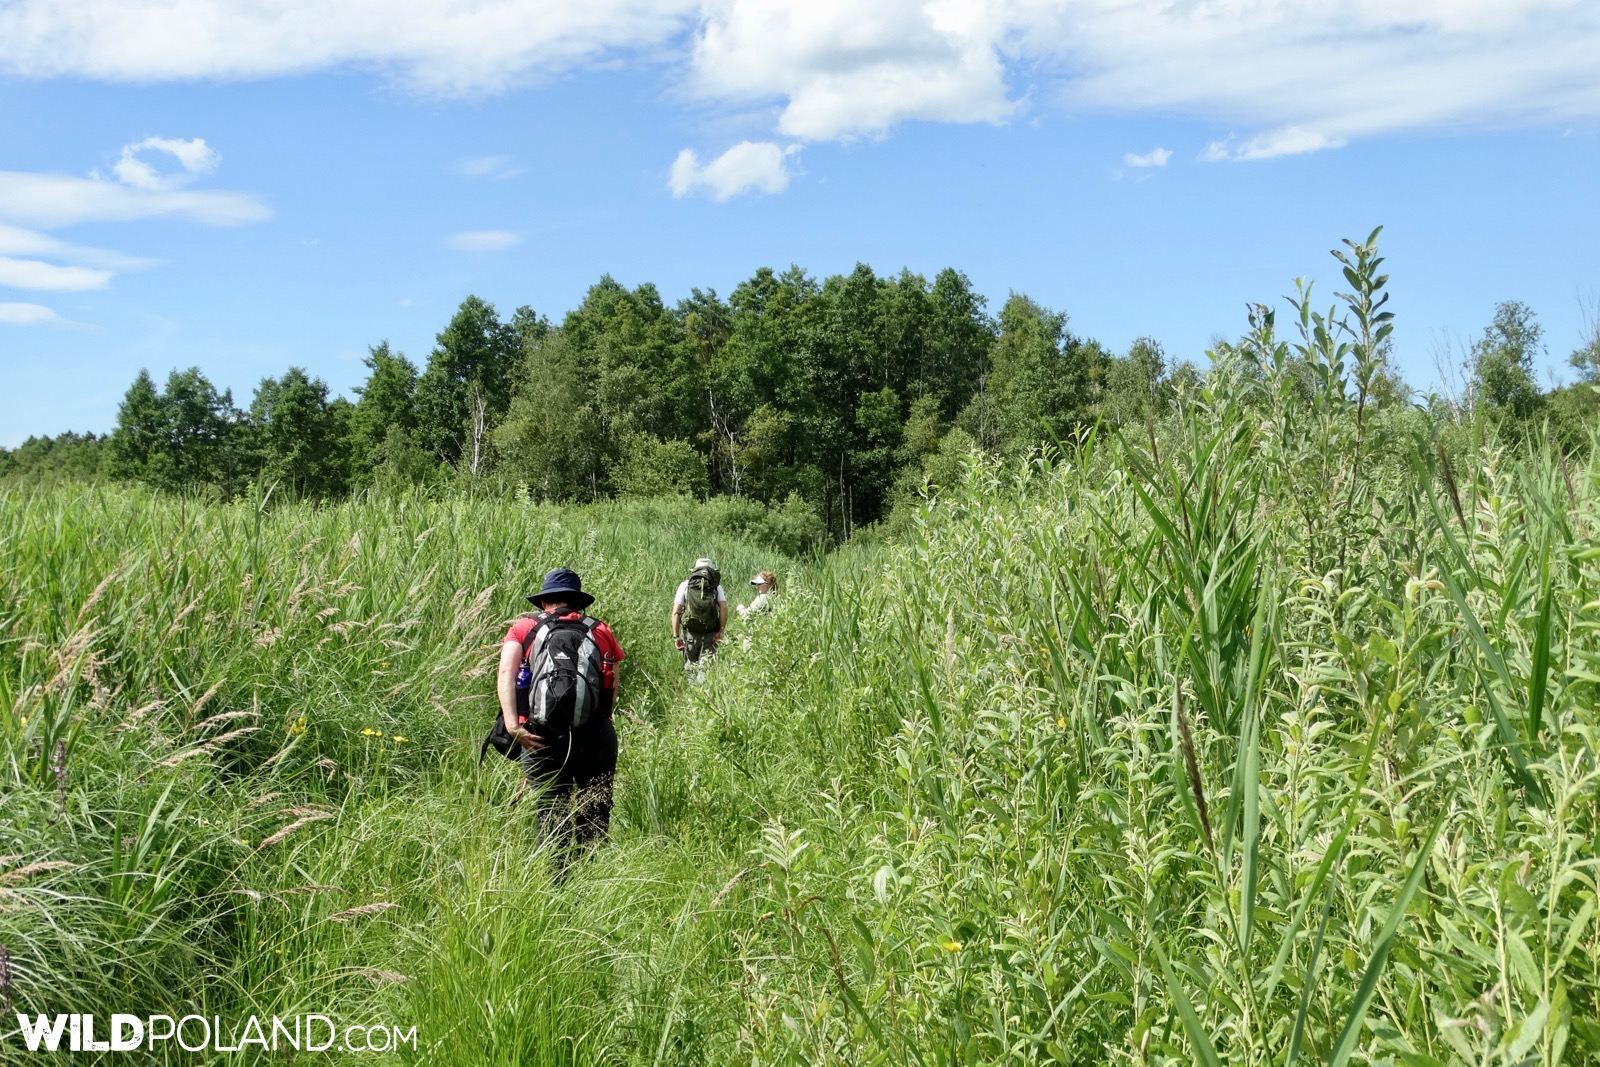 Our group walking through the dense vegetation at Biebrza Marshes, photo by Piotr Dębowski